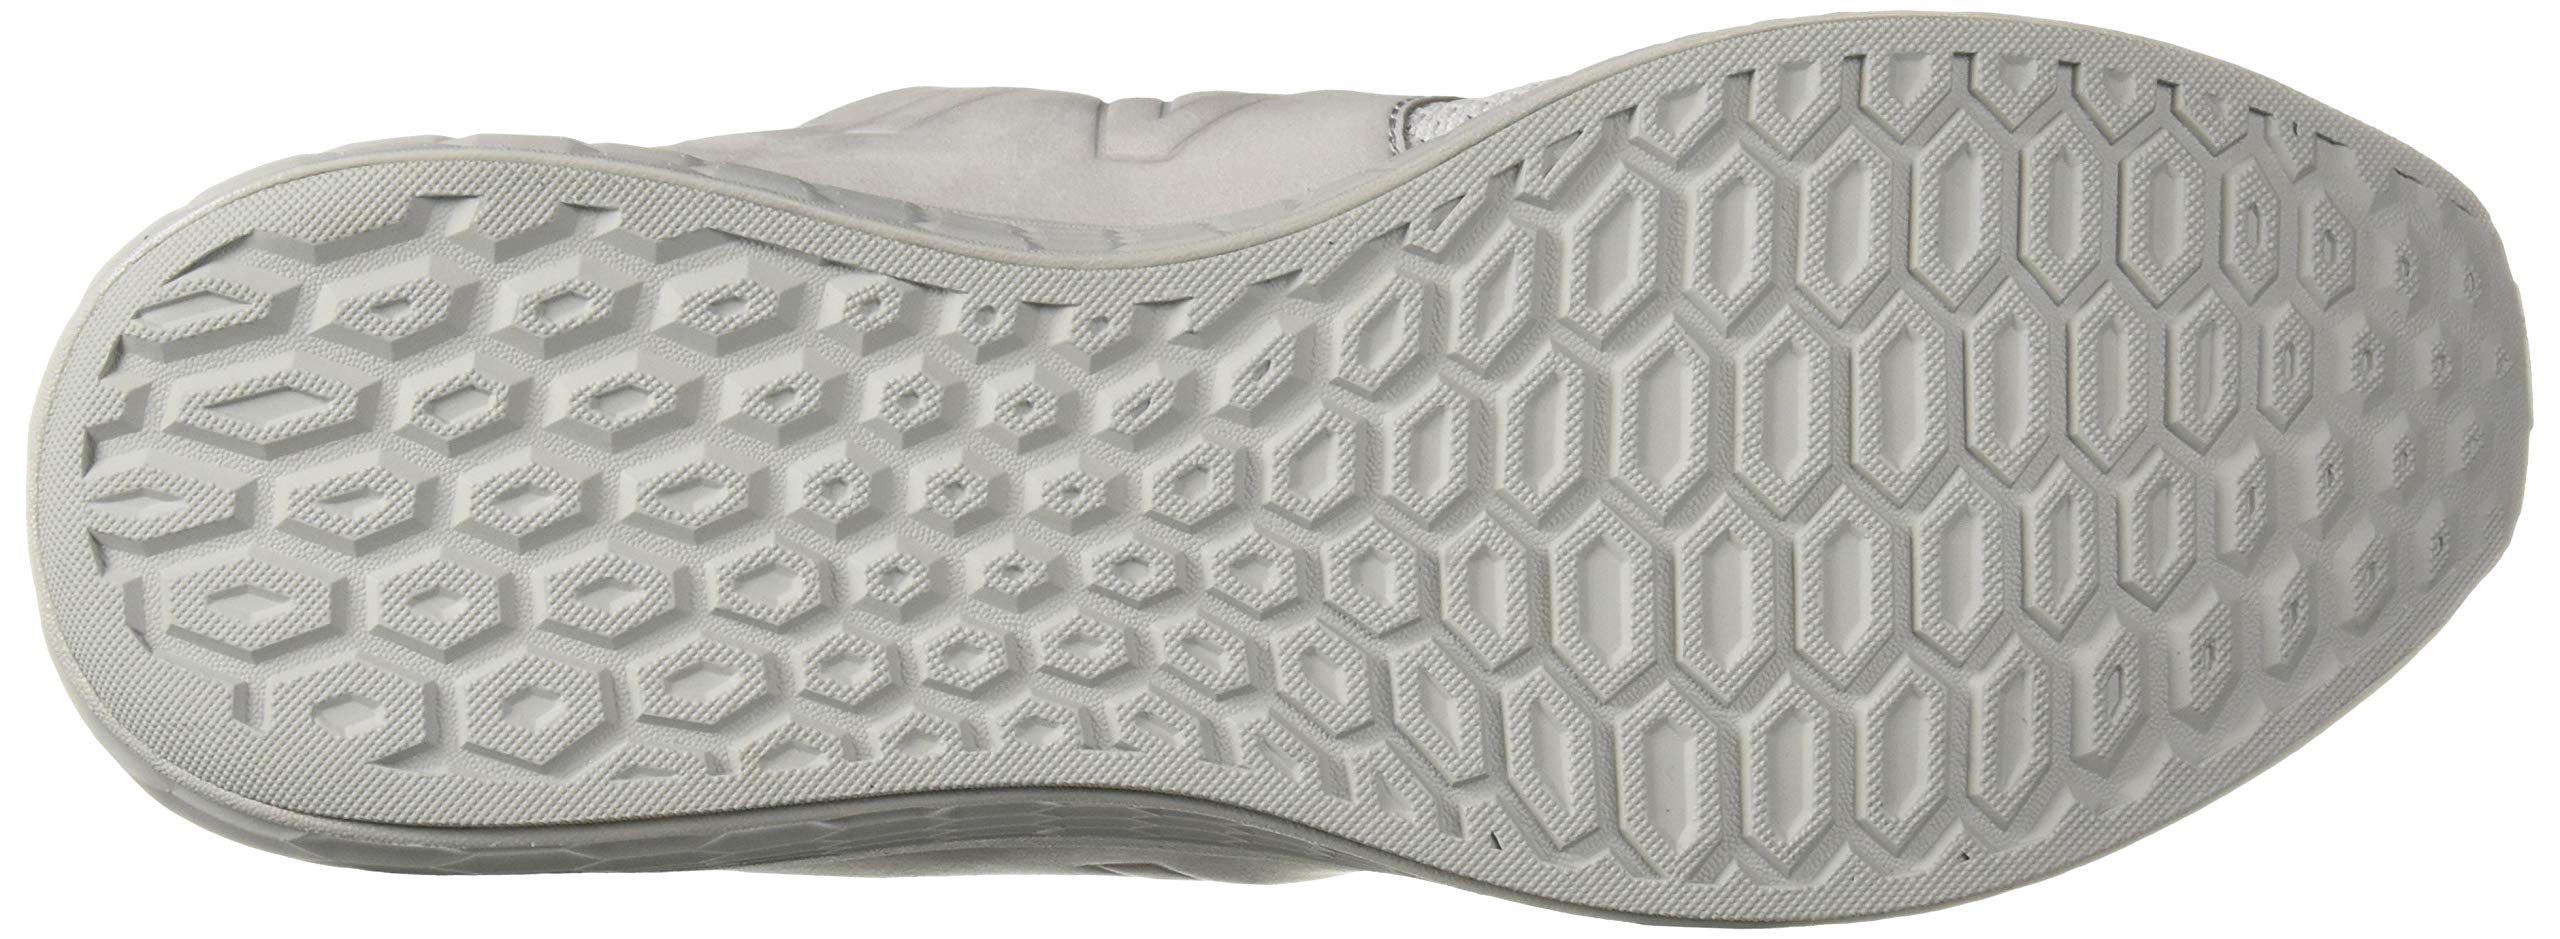 New Balance Men's Cruz V2 Fresh Foam Running Shoe, arctic fox/white/nubuck, 7 D US by New Balance (Image #3)